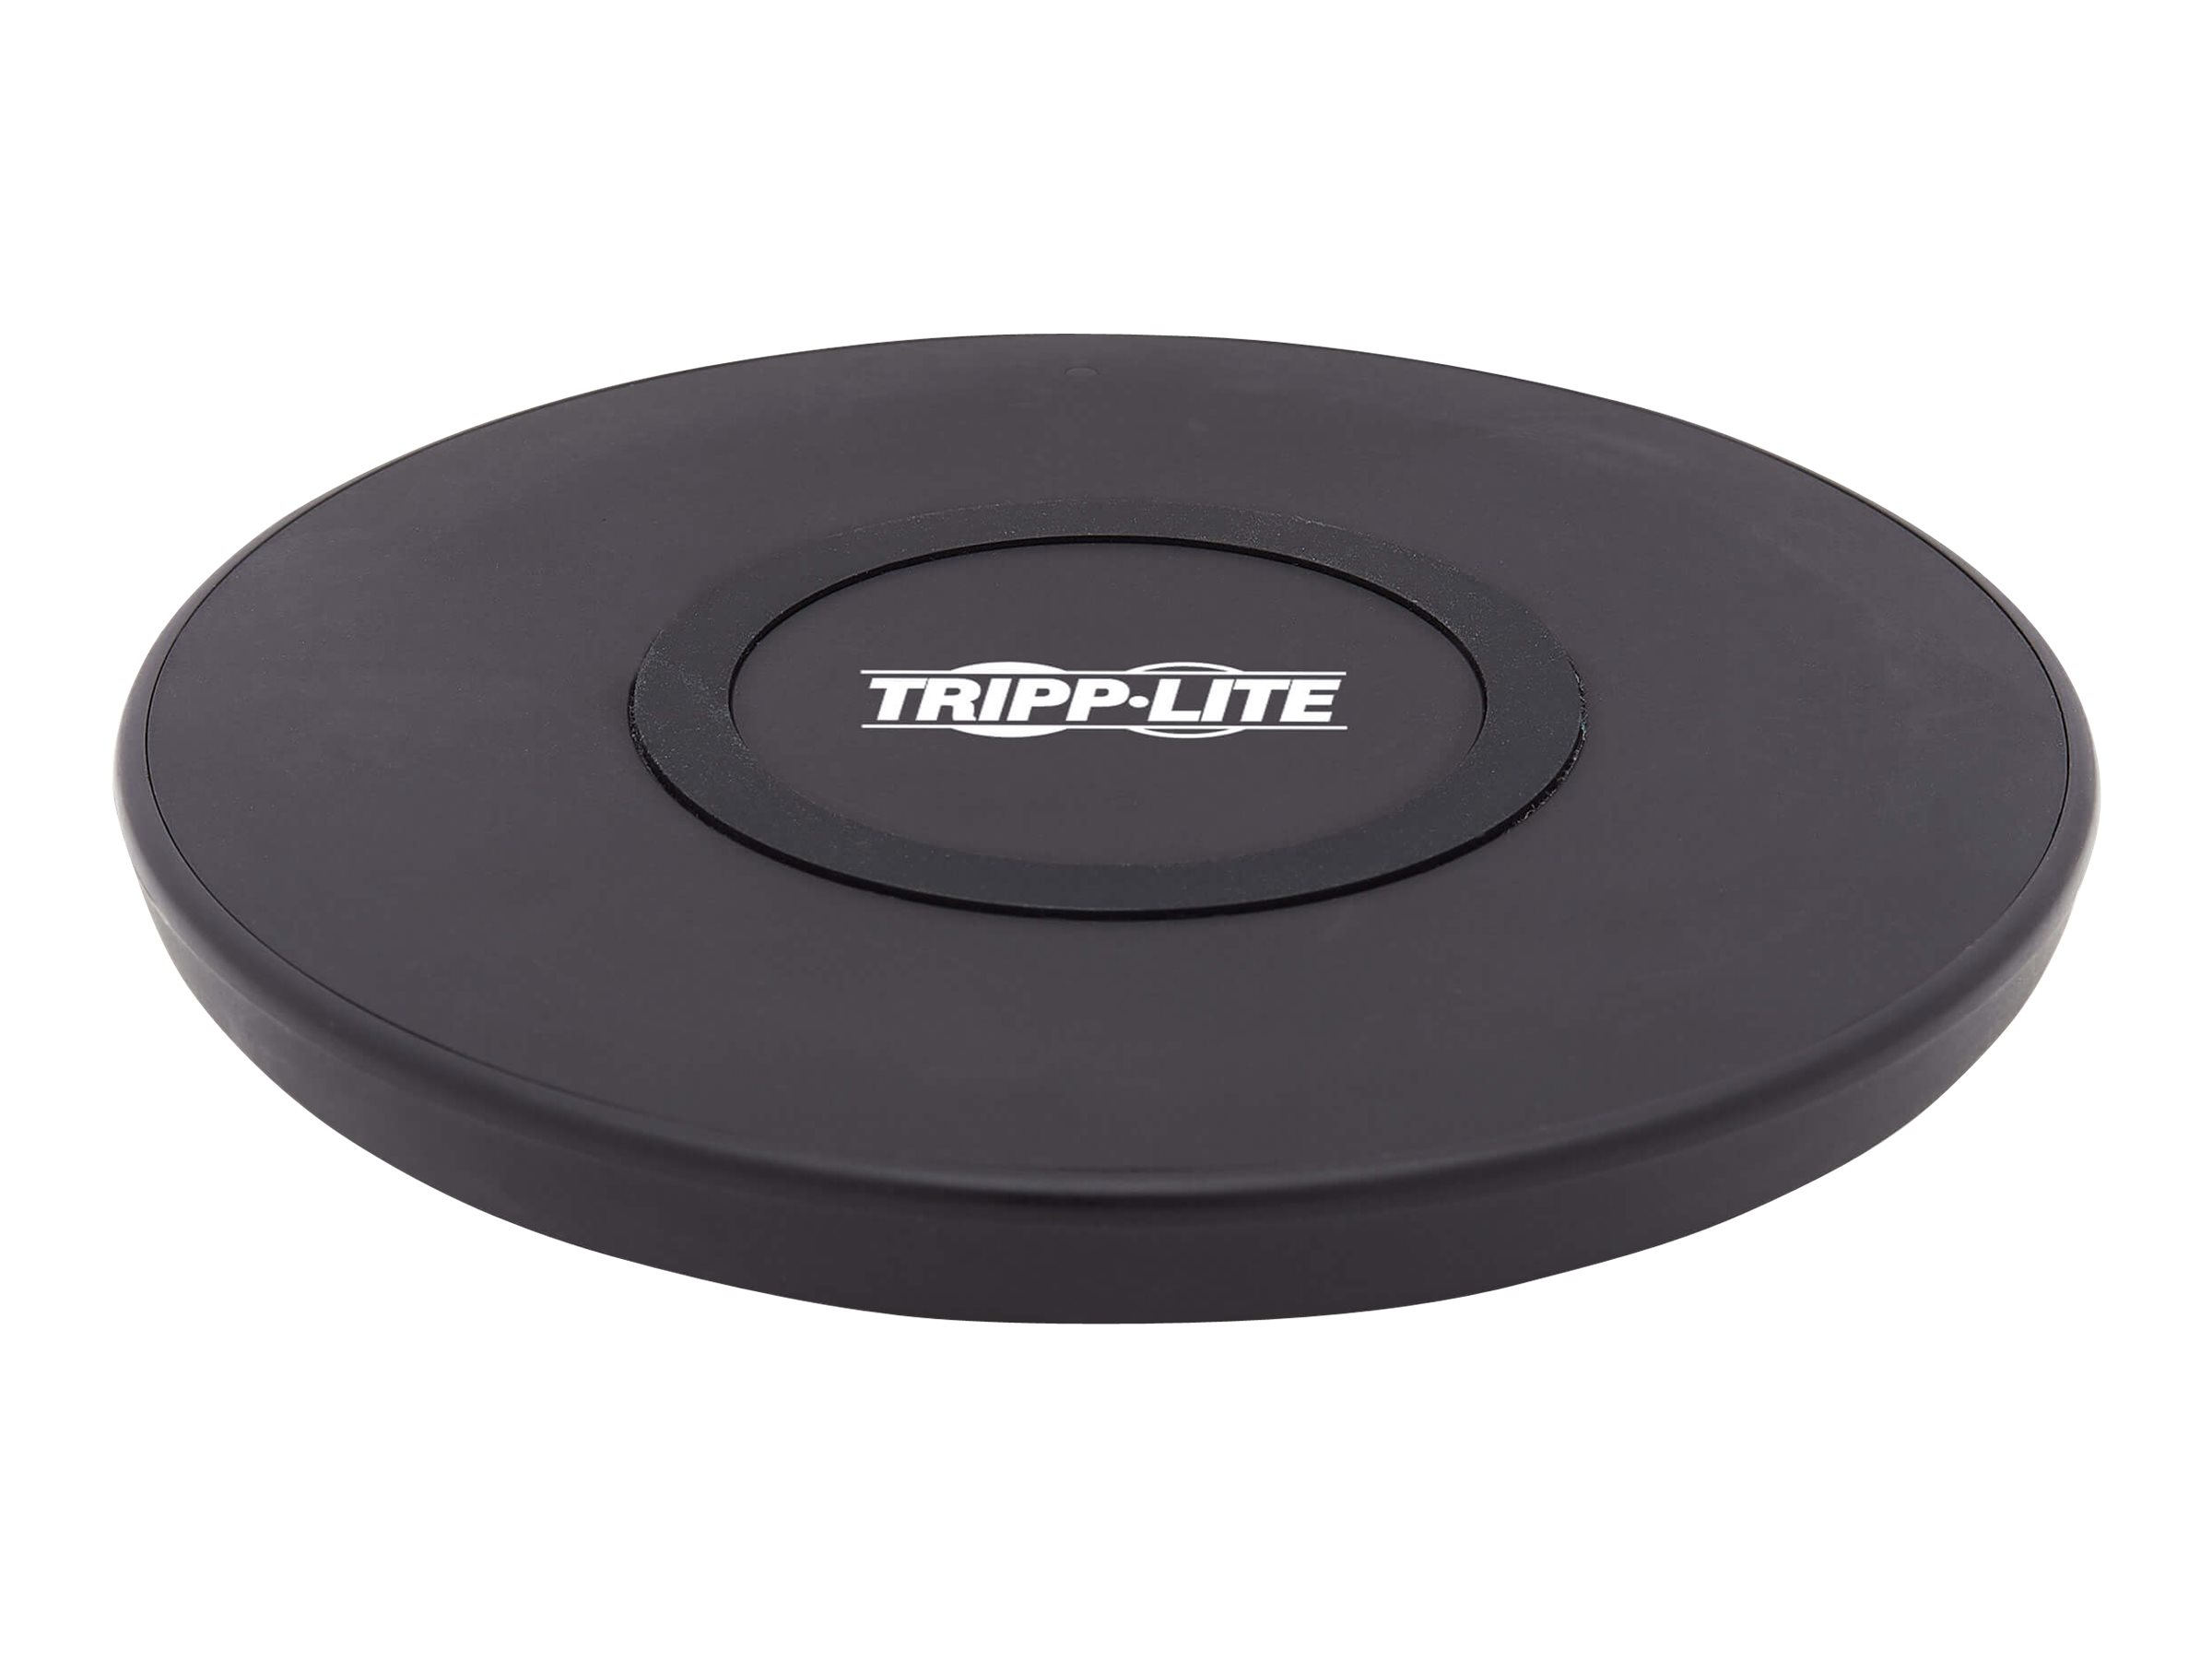 Tripp Lite Wireless Phone Charger - 10W, Qi Certified, Apple and Samsung Compatible, Black wireless charging pad